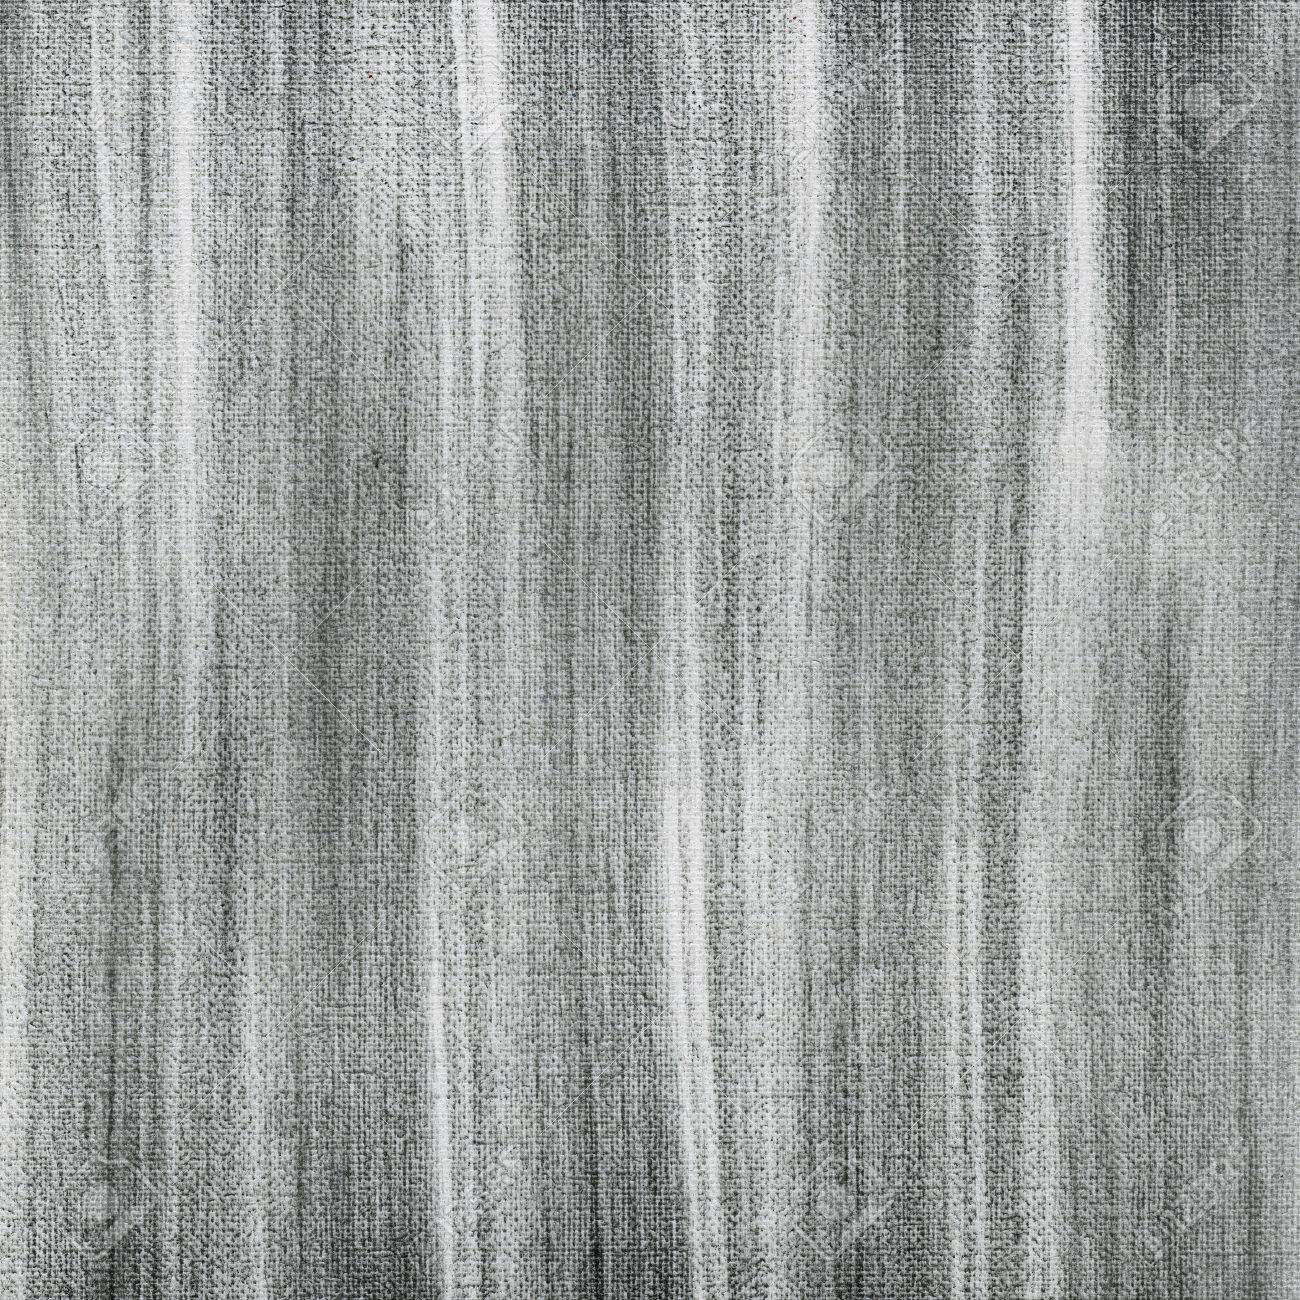 black charcoal smudges on white artist canvas, self made by photographer Stock Photo - 7051936